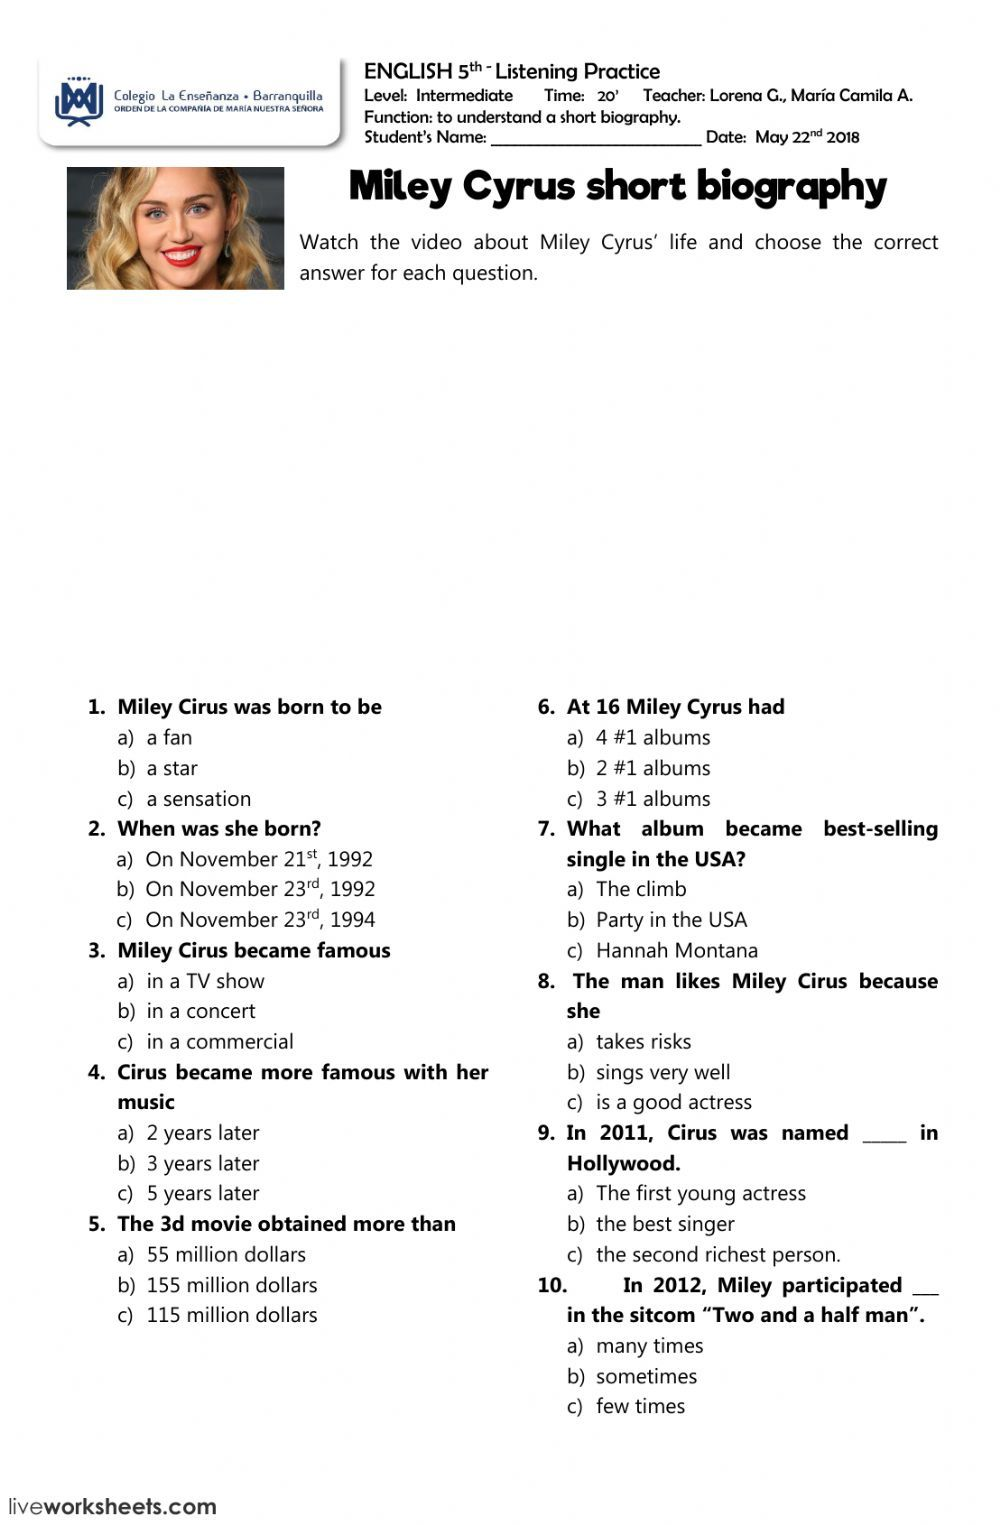 Listening Comprehension Interactive And Downloadable Worksheet You Can Do The Exercises Listening Skills Worksheets Good Listening Skills Practices Worksheets [ 1525 x 1000 Pixel ]